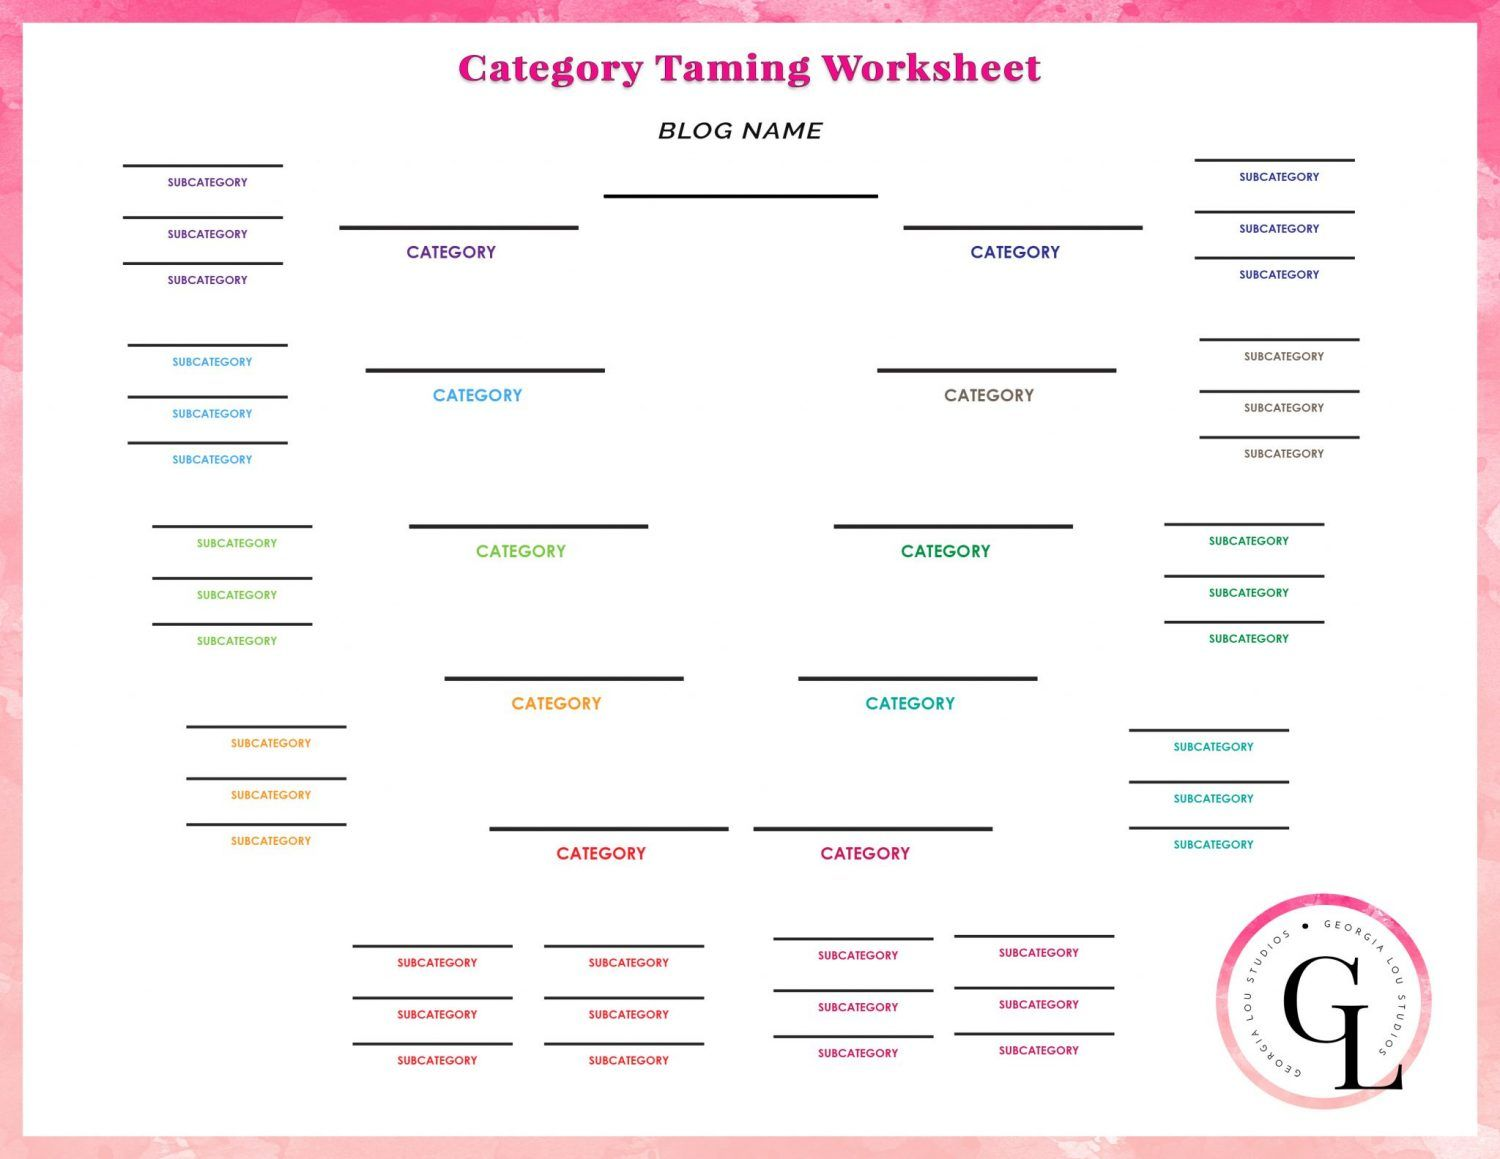 The Right Way To Organize Your Blog With Categories